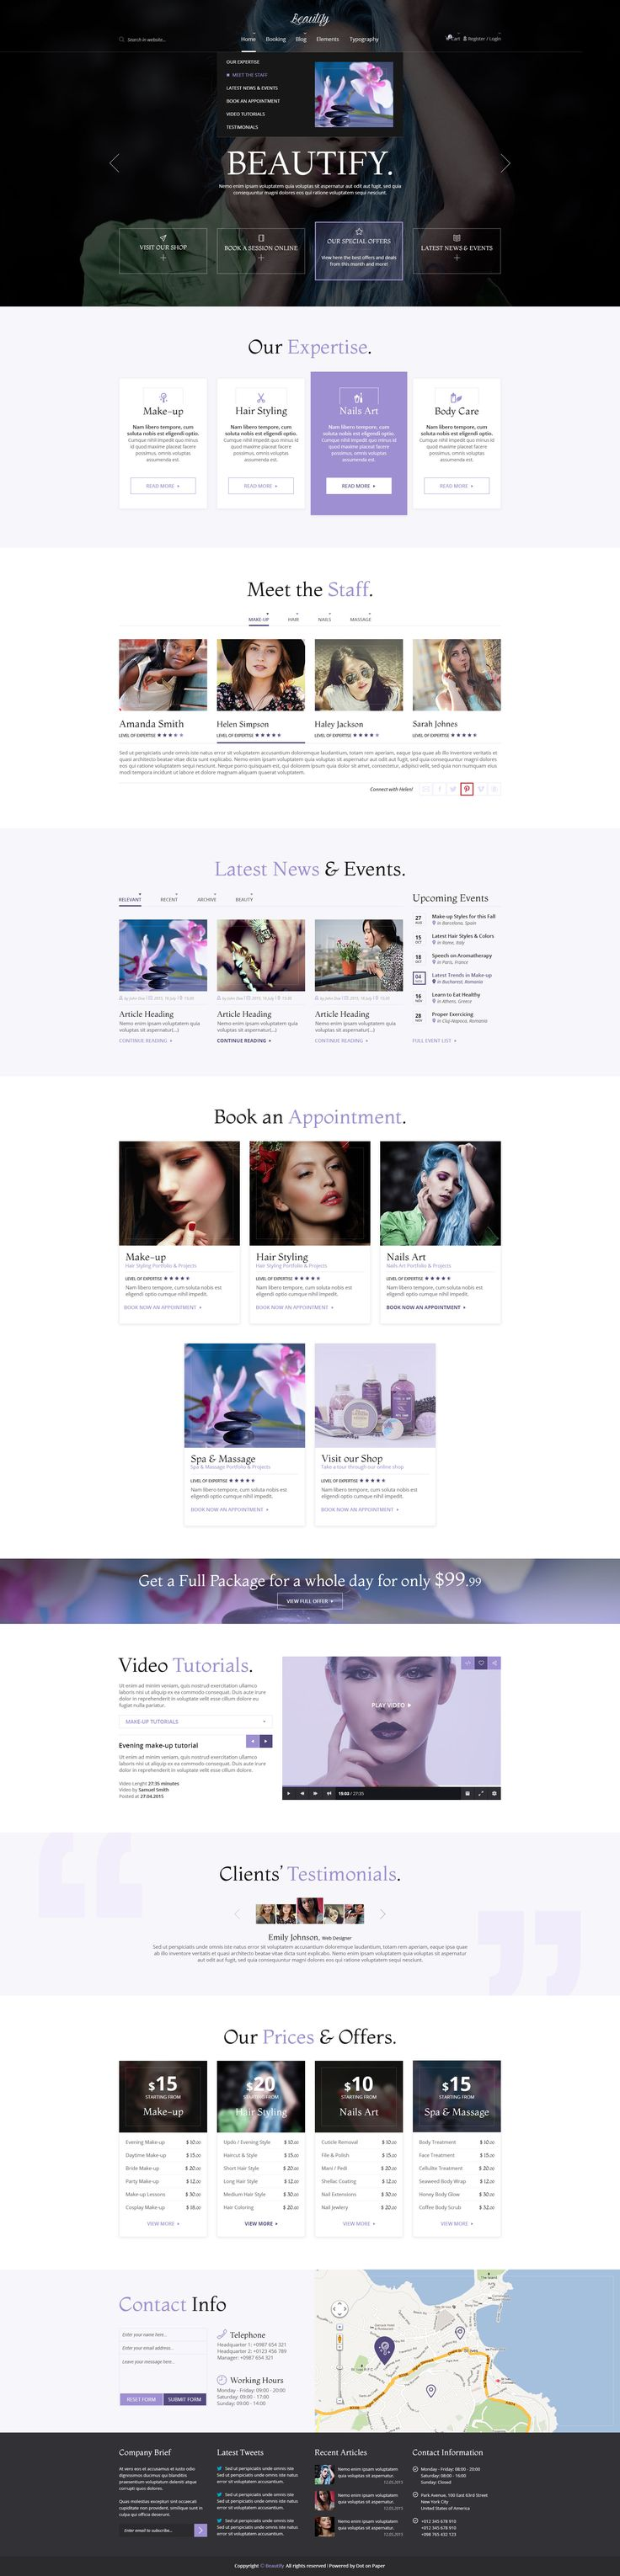 Beautify is a new, clean and modern multi-purpose online booking template. It is ideal for beauty salons, spa centres, cosmetics shops or any kind of beauty expert who needs to organise their time and appointments. It is fully layered, pixel perfect and very easy to customise. It contains 32 PSD files, for all devices (desktop, tablet and mobile phone).